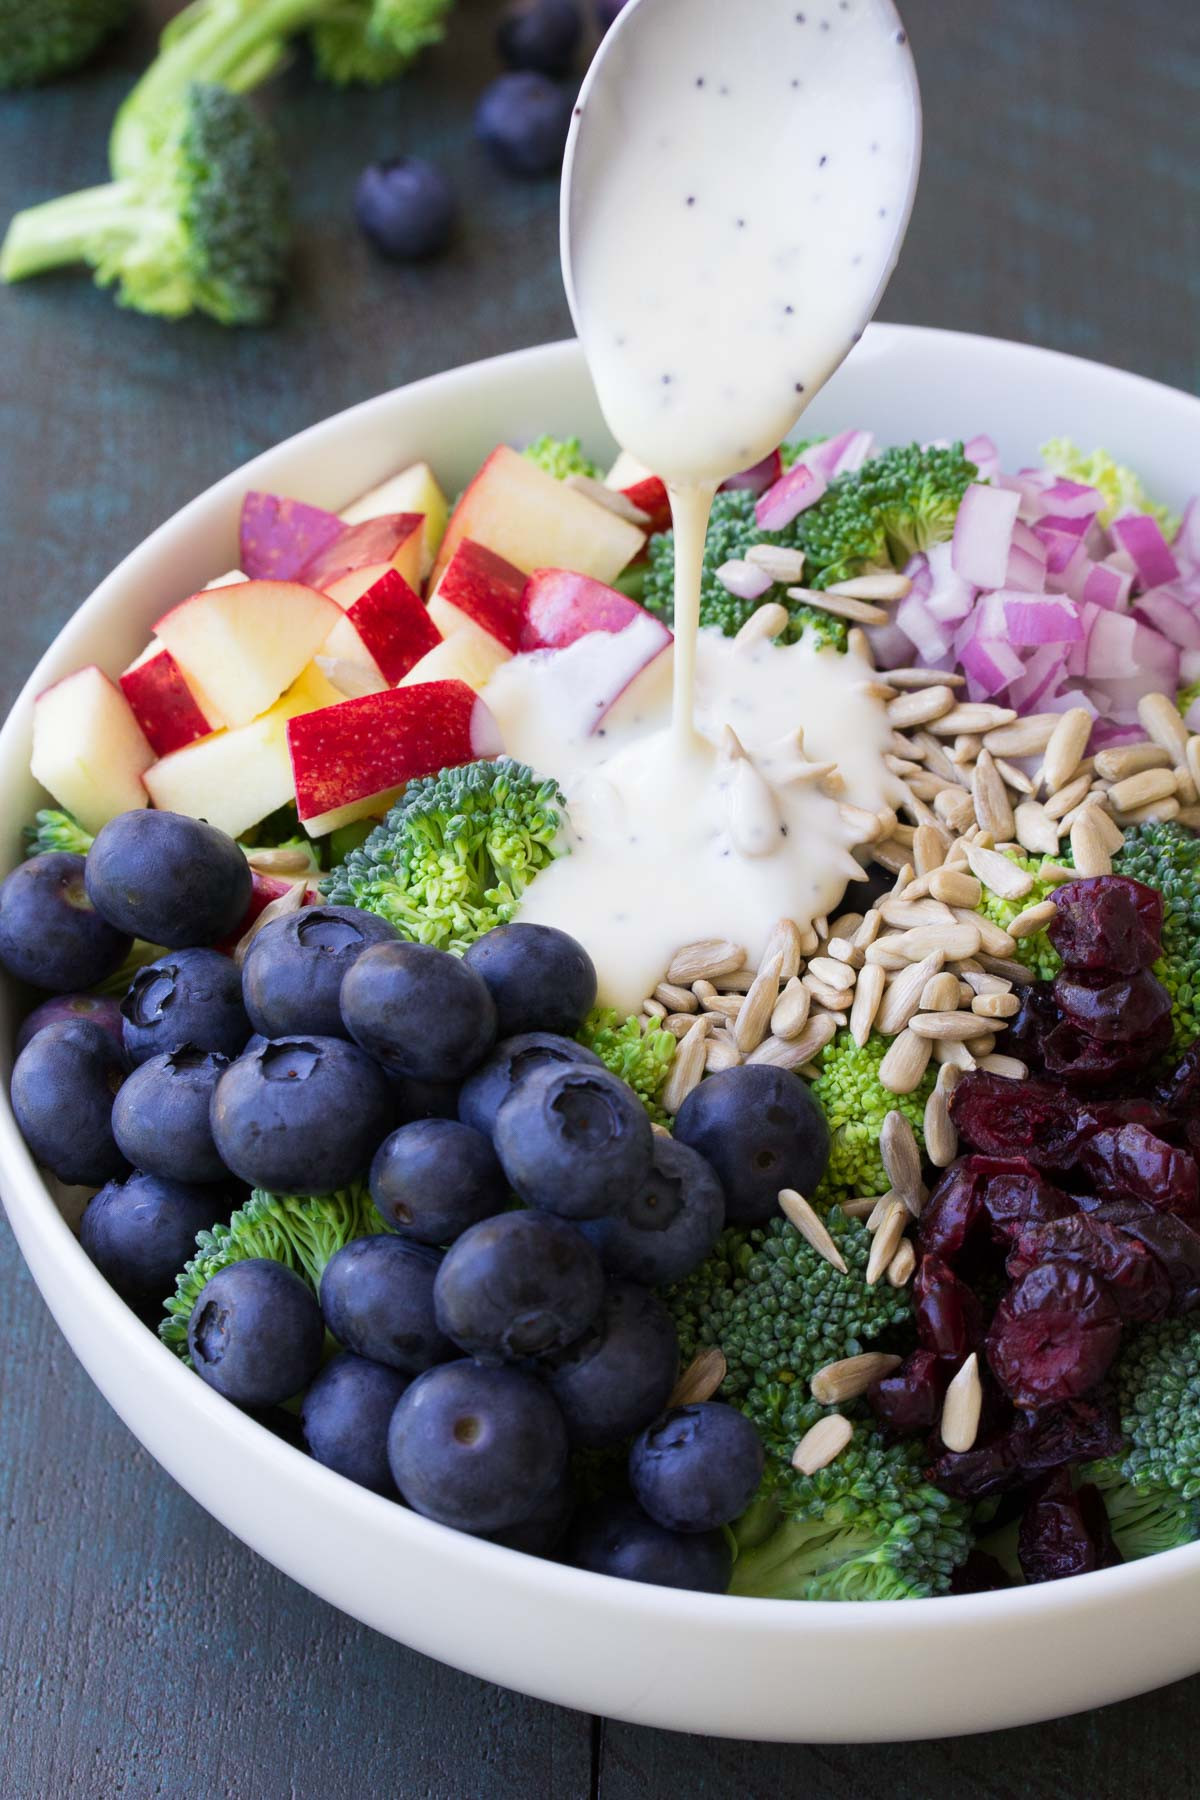 Broccoli Salad No Mayo  No Mayo Broccoli Salad with Blueberries and Apple